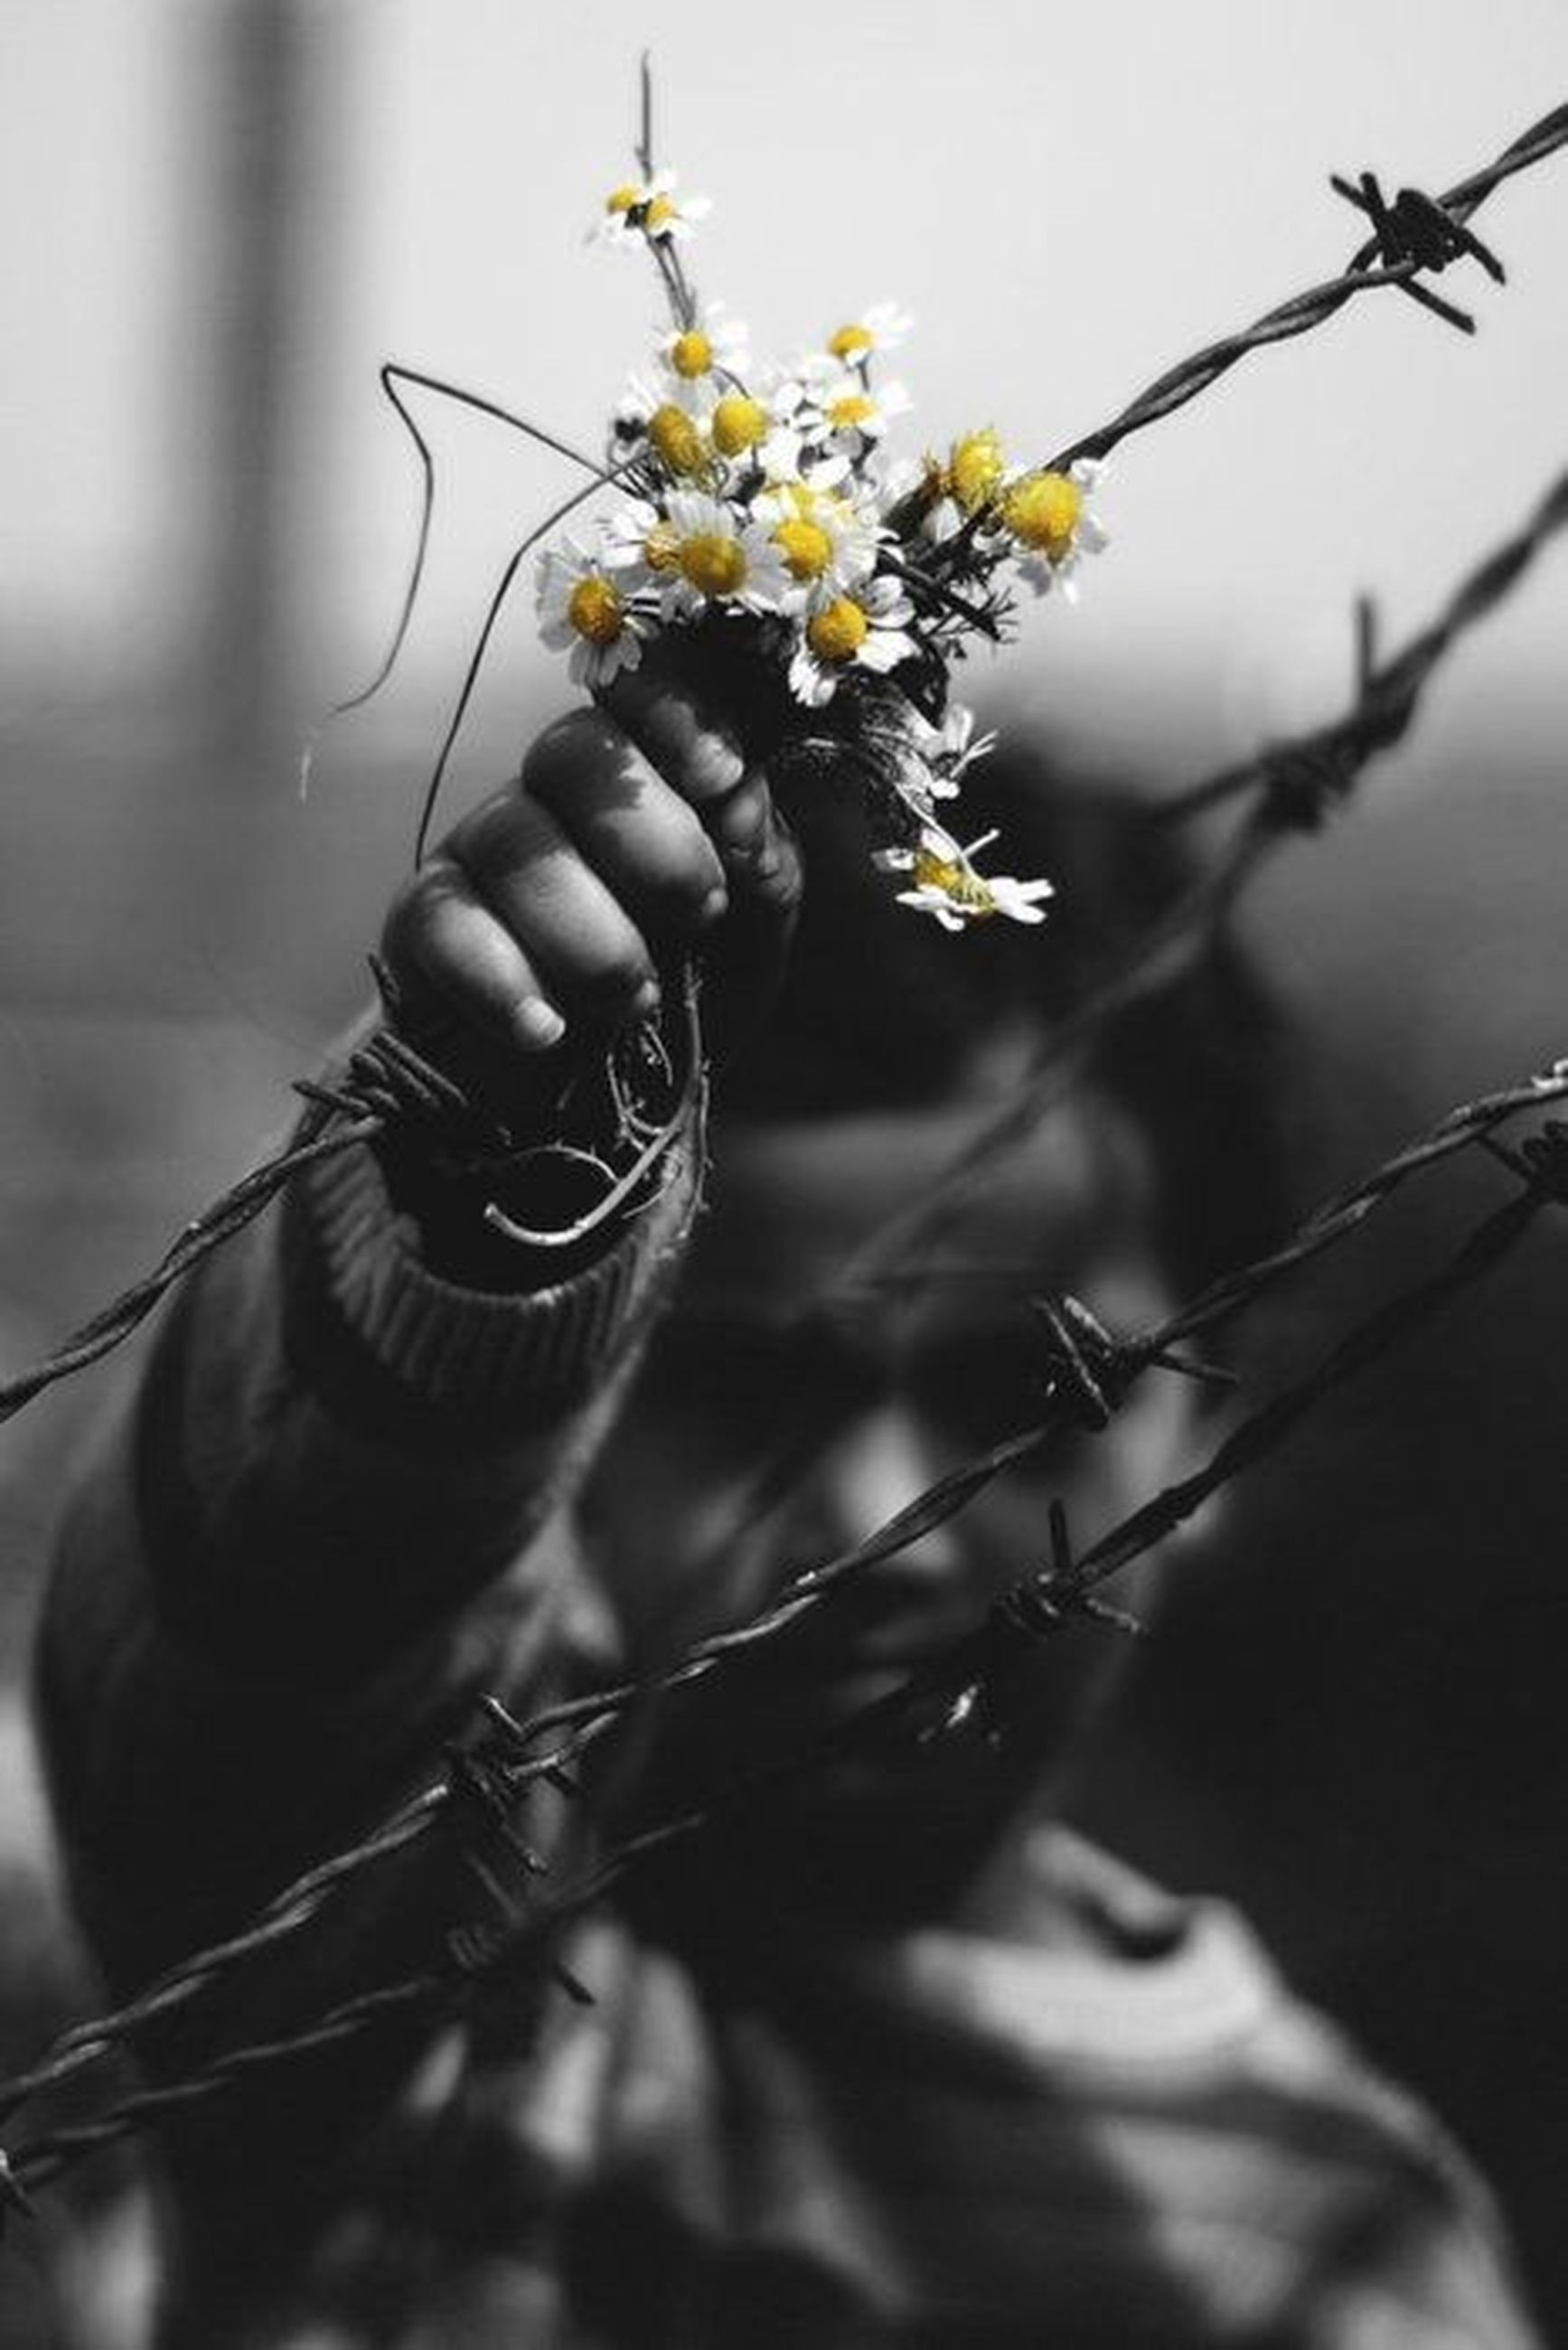 flower, nature, growth, plant, branch, black color, close-up, fragility, no people, day, beauty in nature, outdoors, flower head